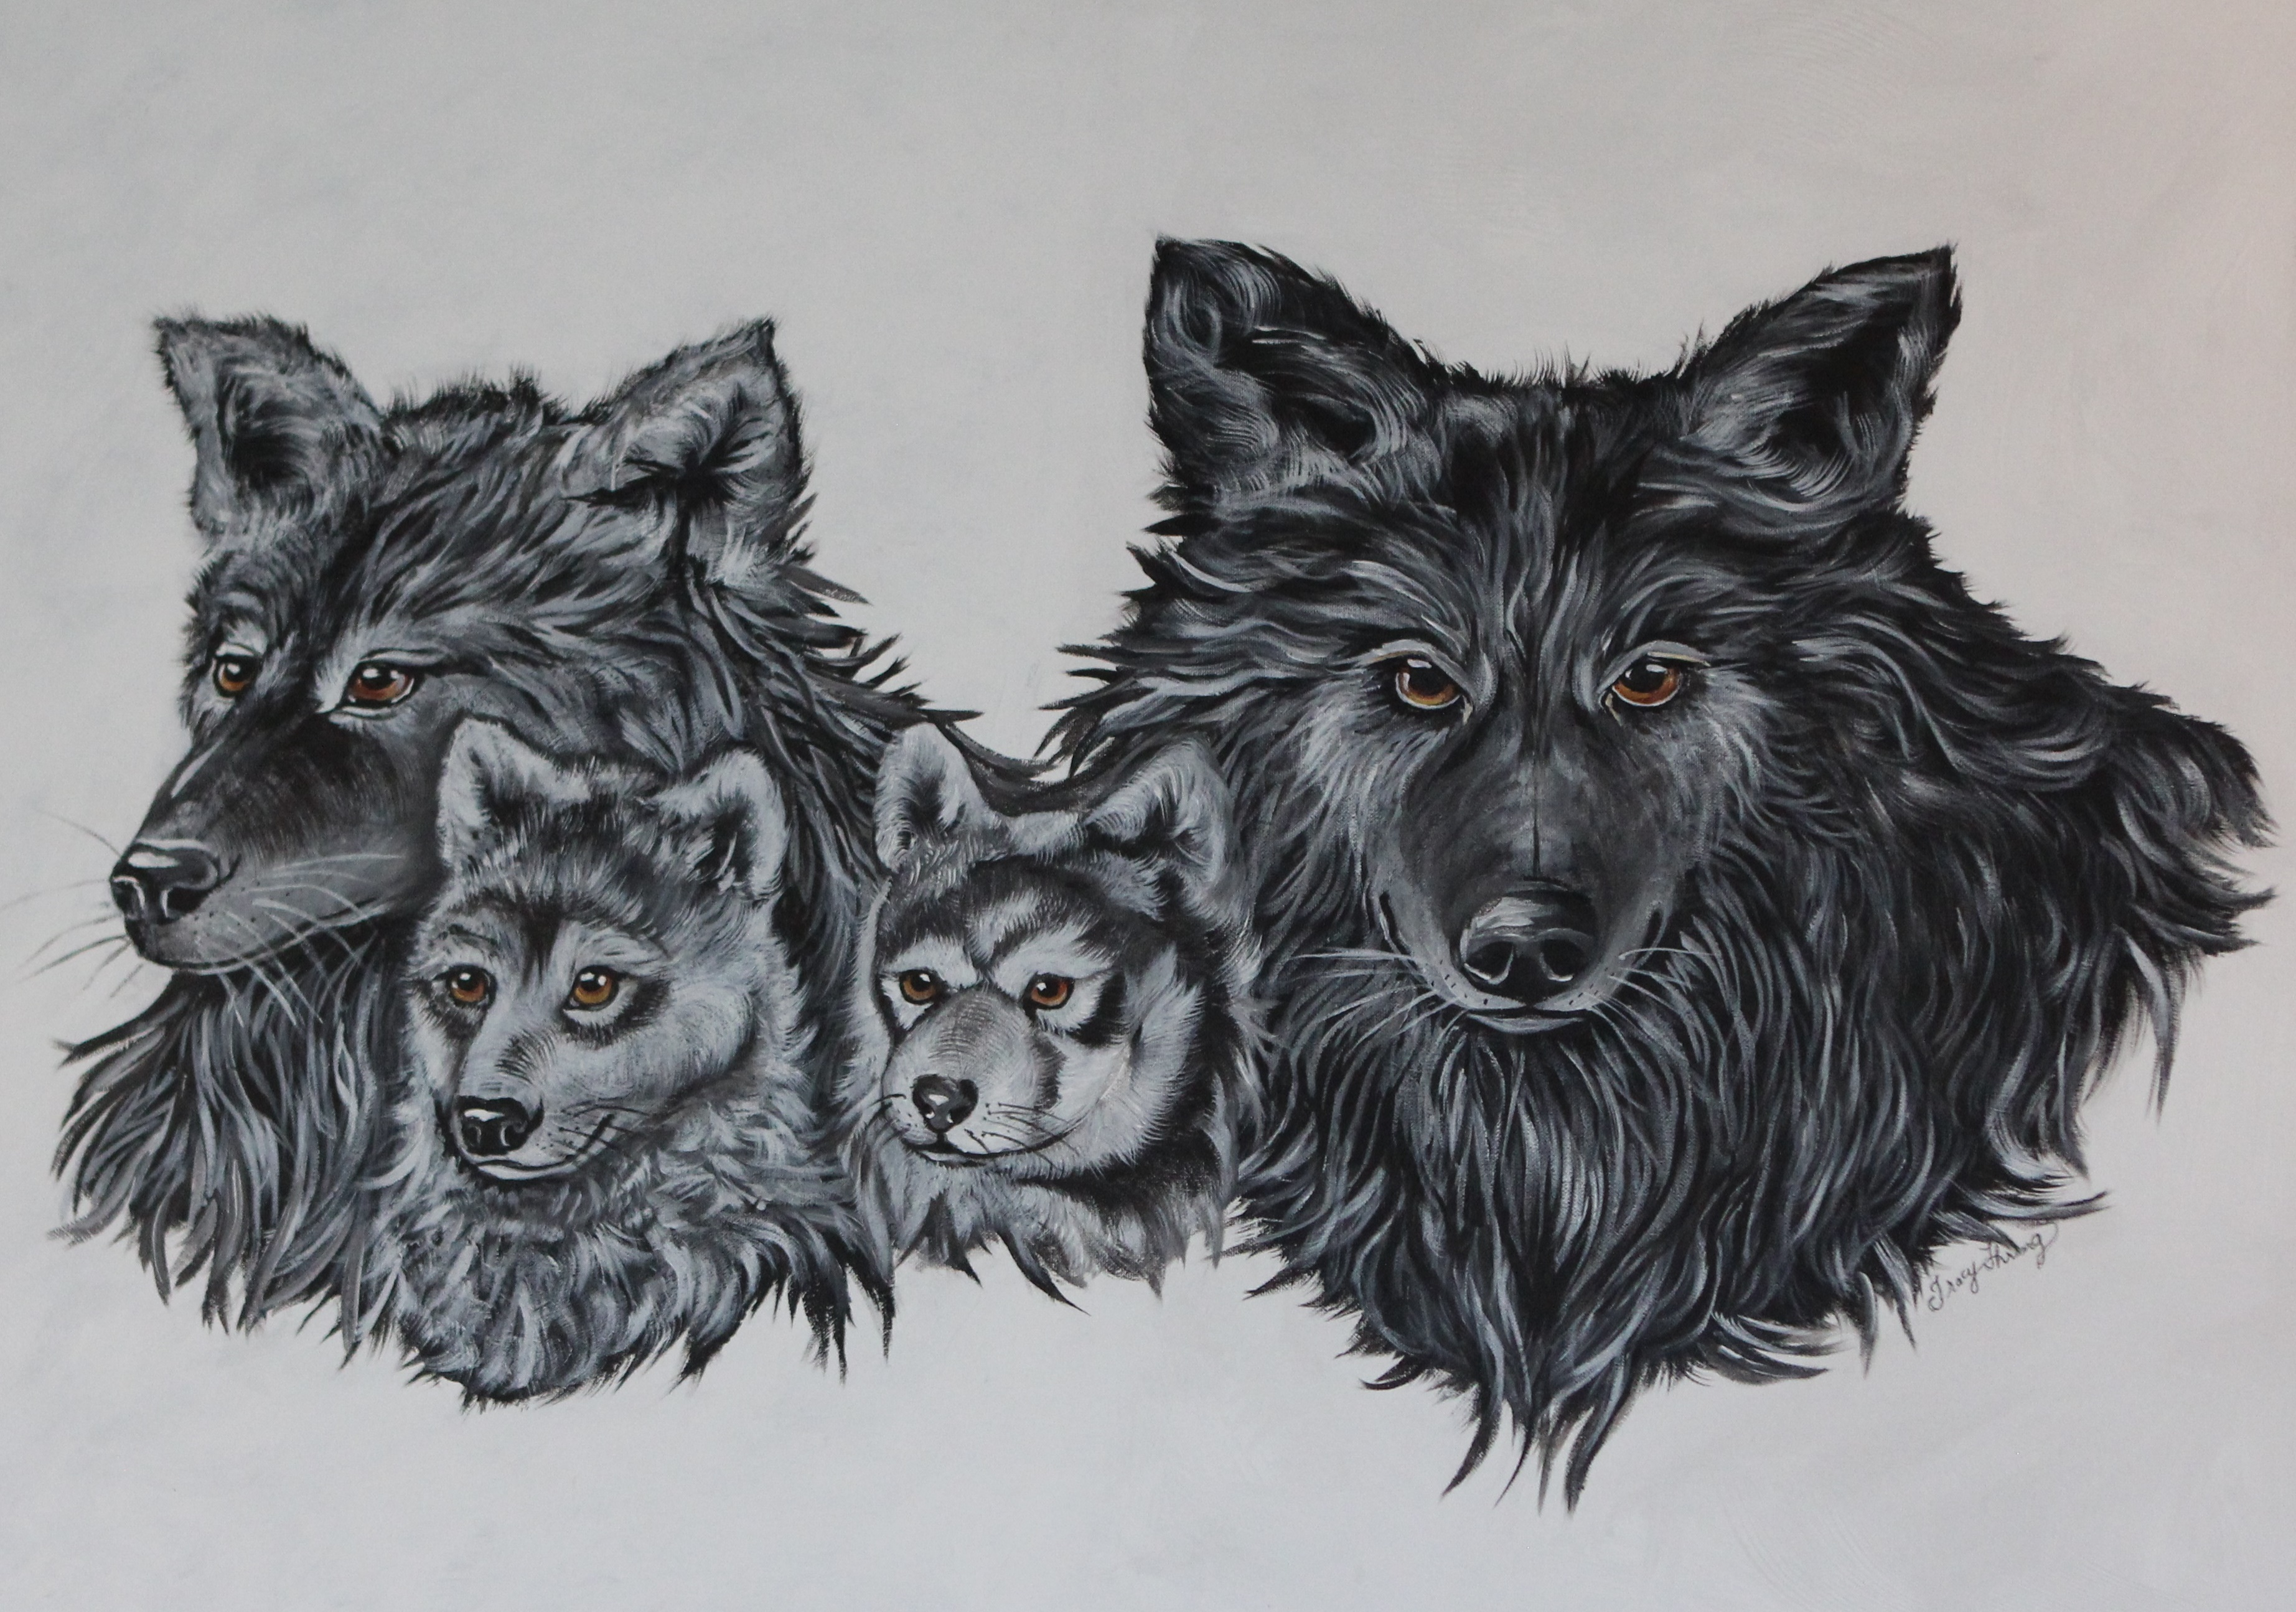 The family of wolves